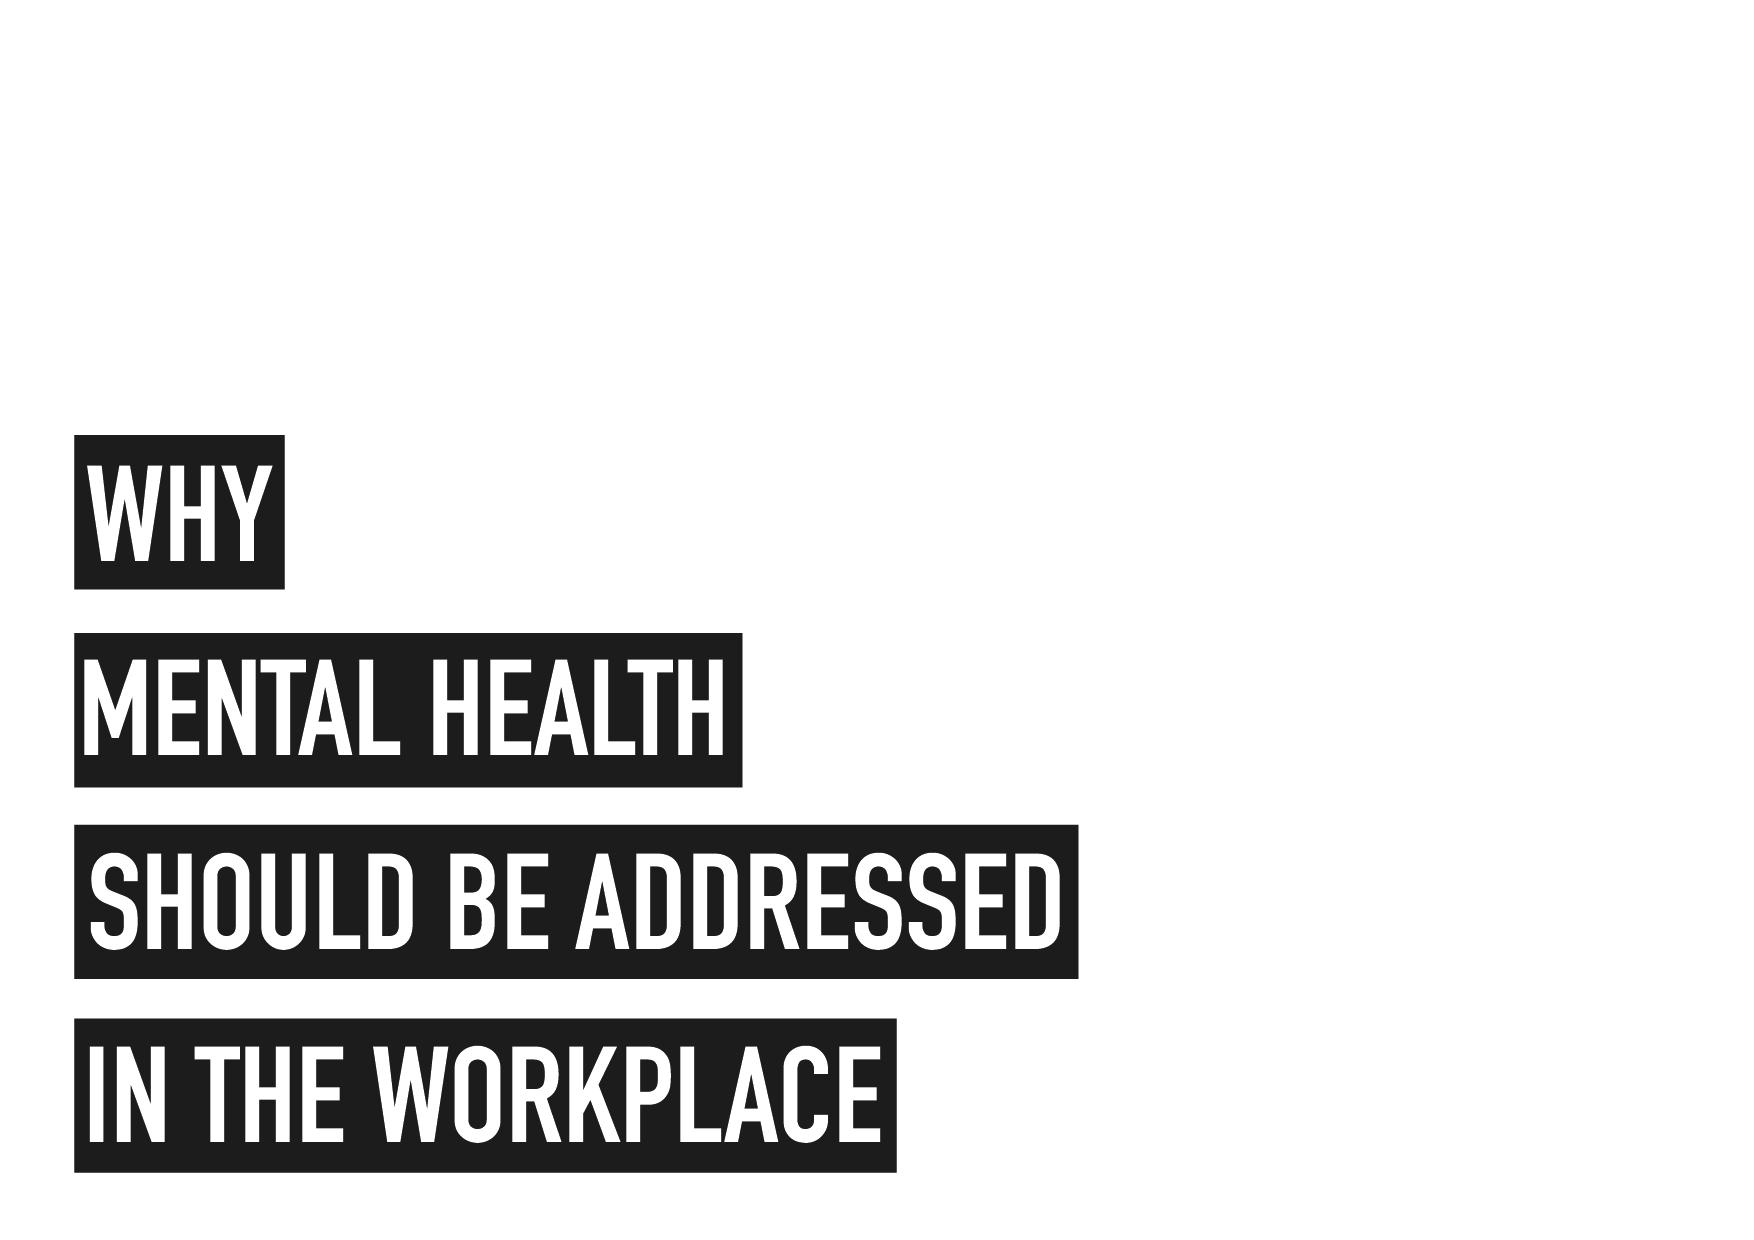 Why Mental Health Should be Addressed in the Workplace